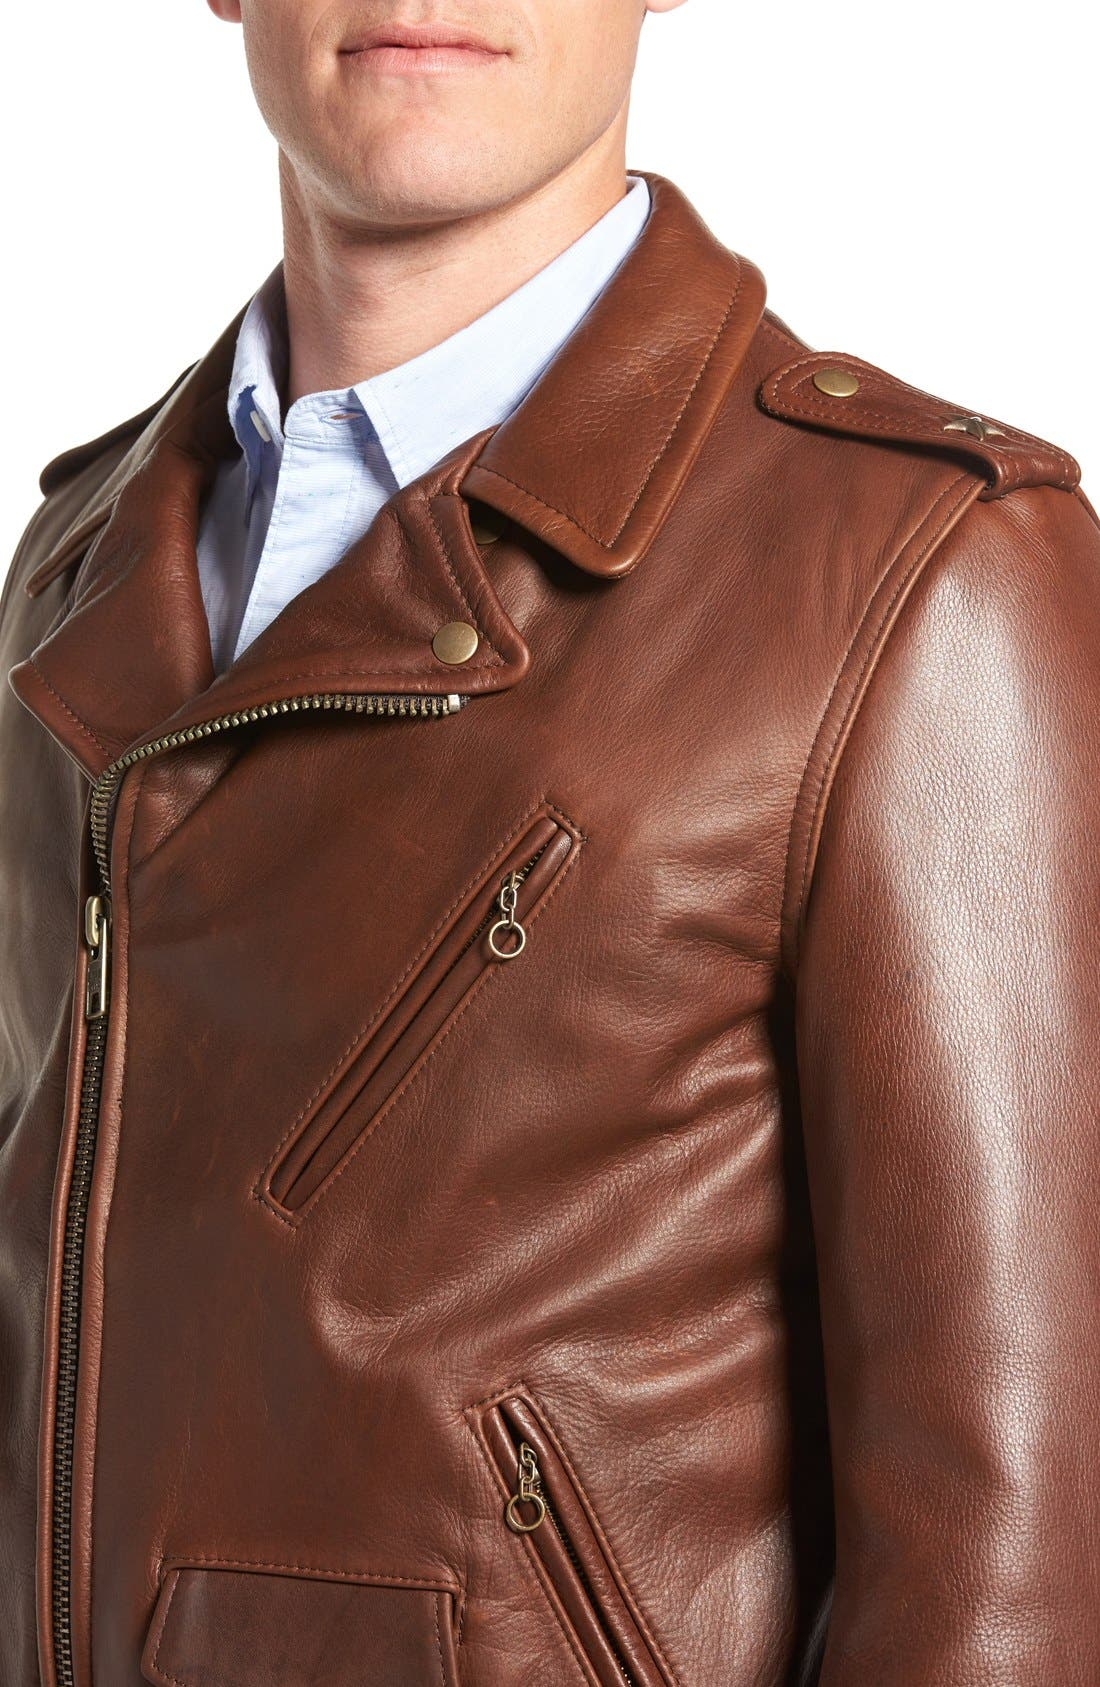 '50s Perfecto Oil Tanned Cowhide Leather Moto Jacket,                             Alternate thumbnail 4, color,                             Brown